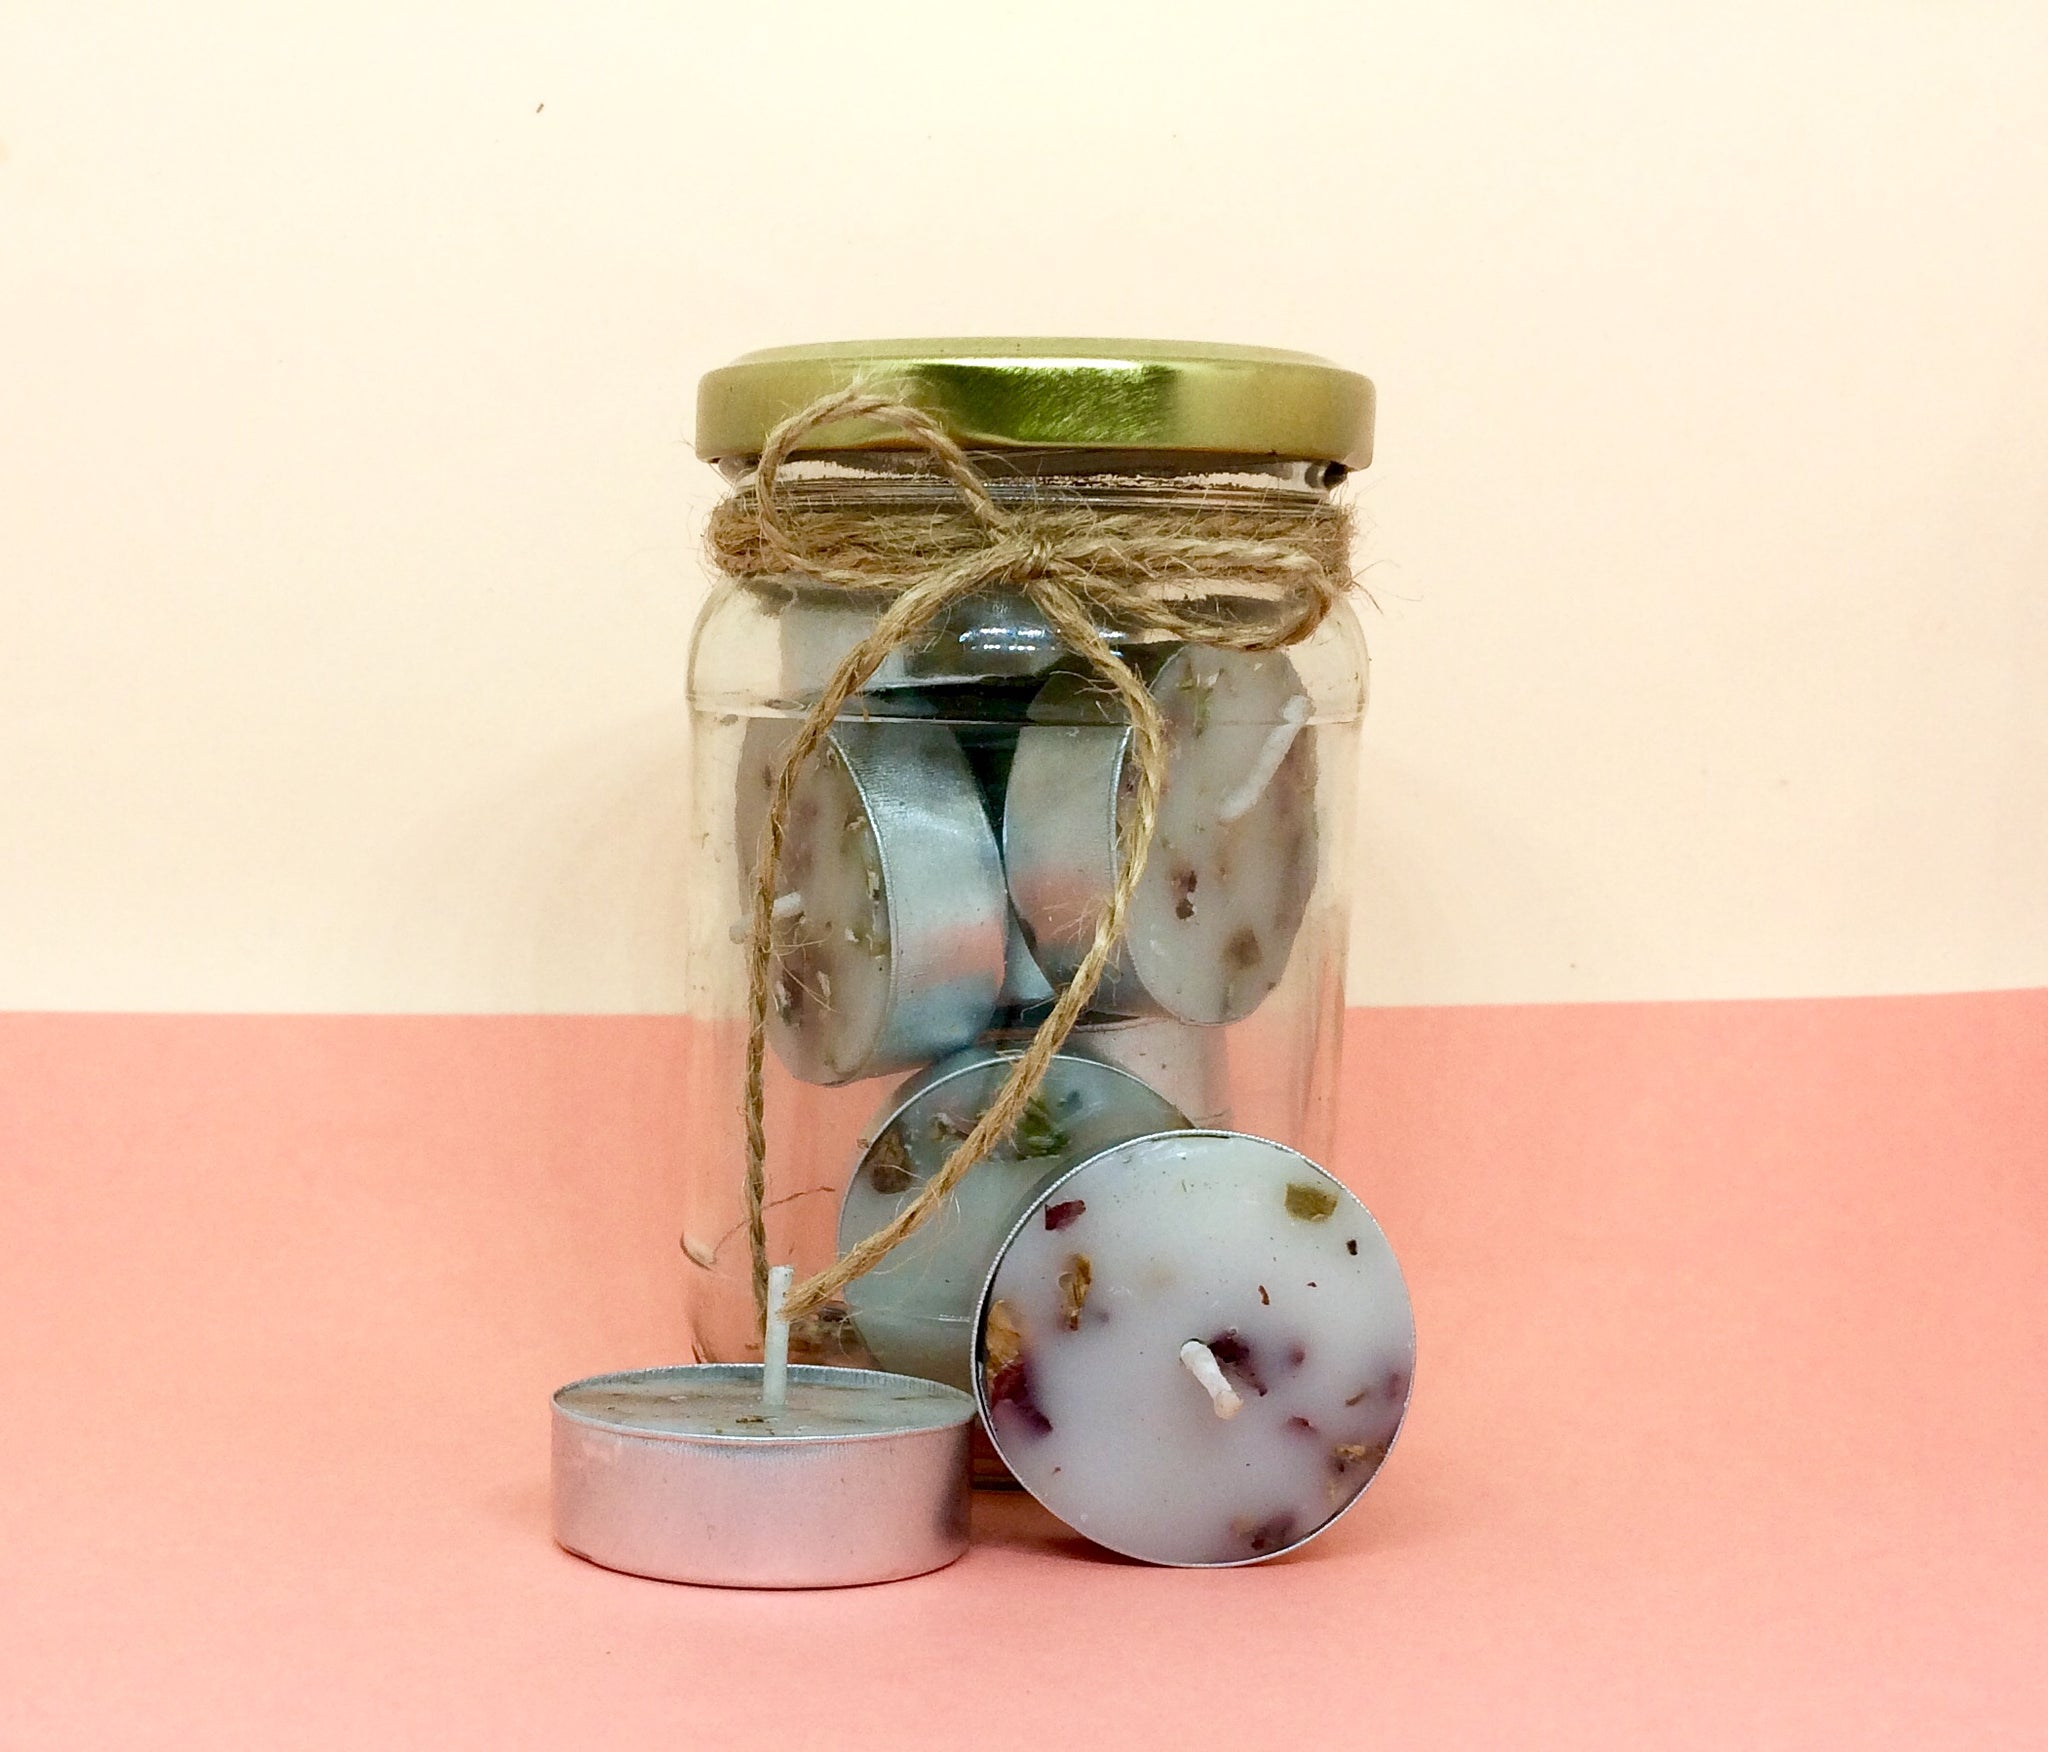 Rose Lavender Petals Infused Tealights